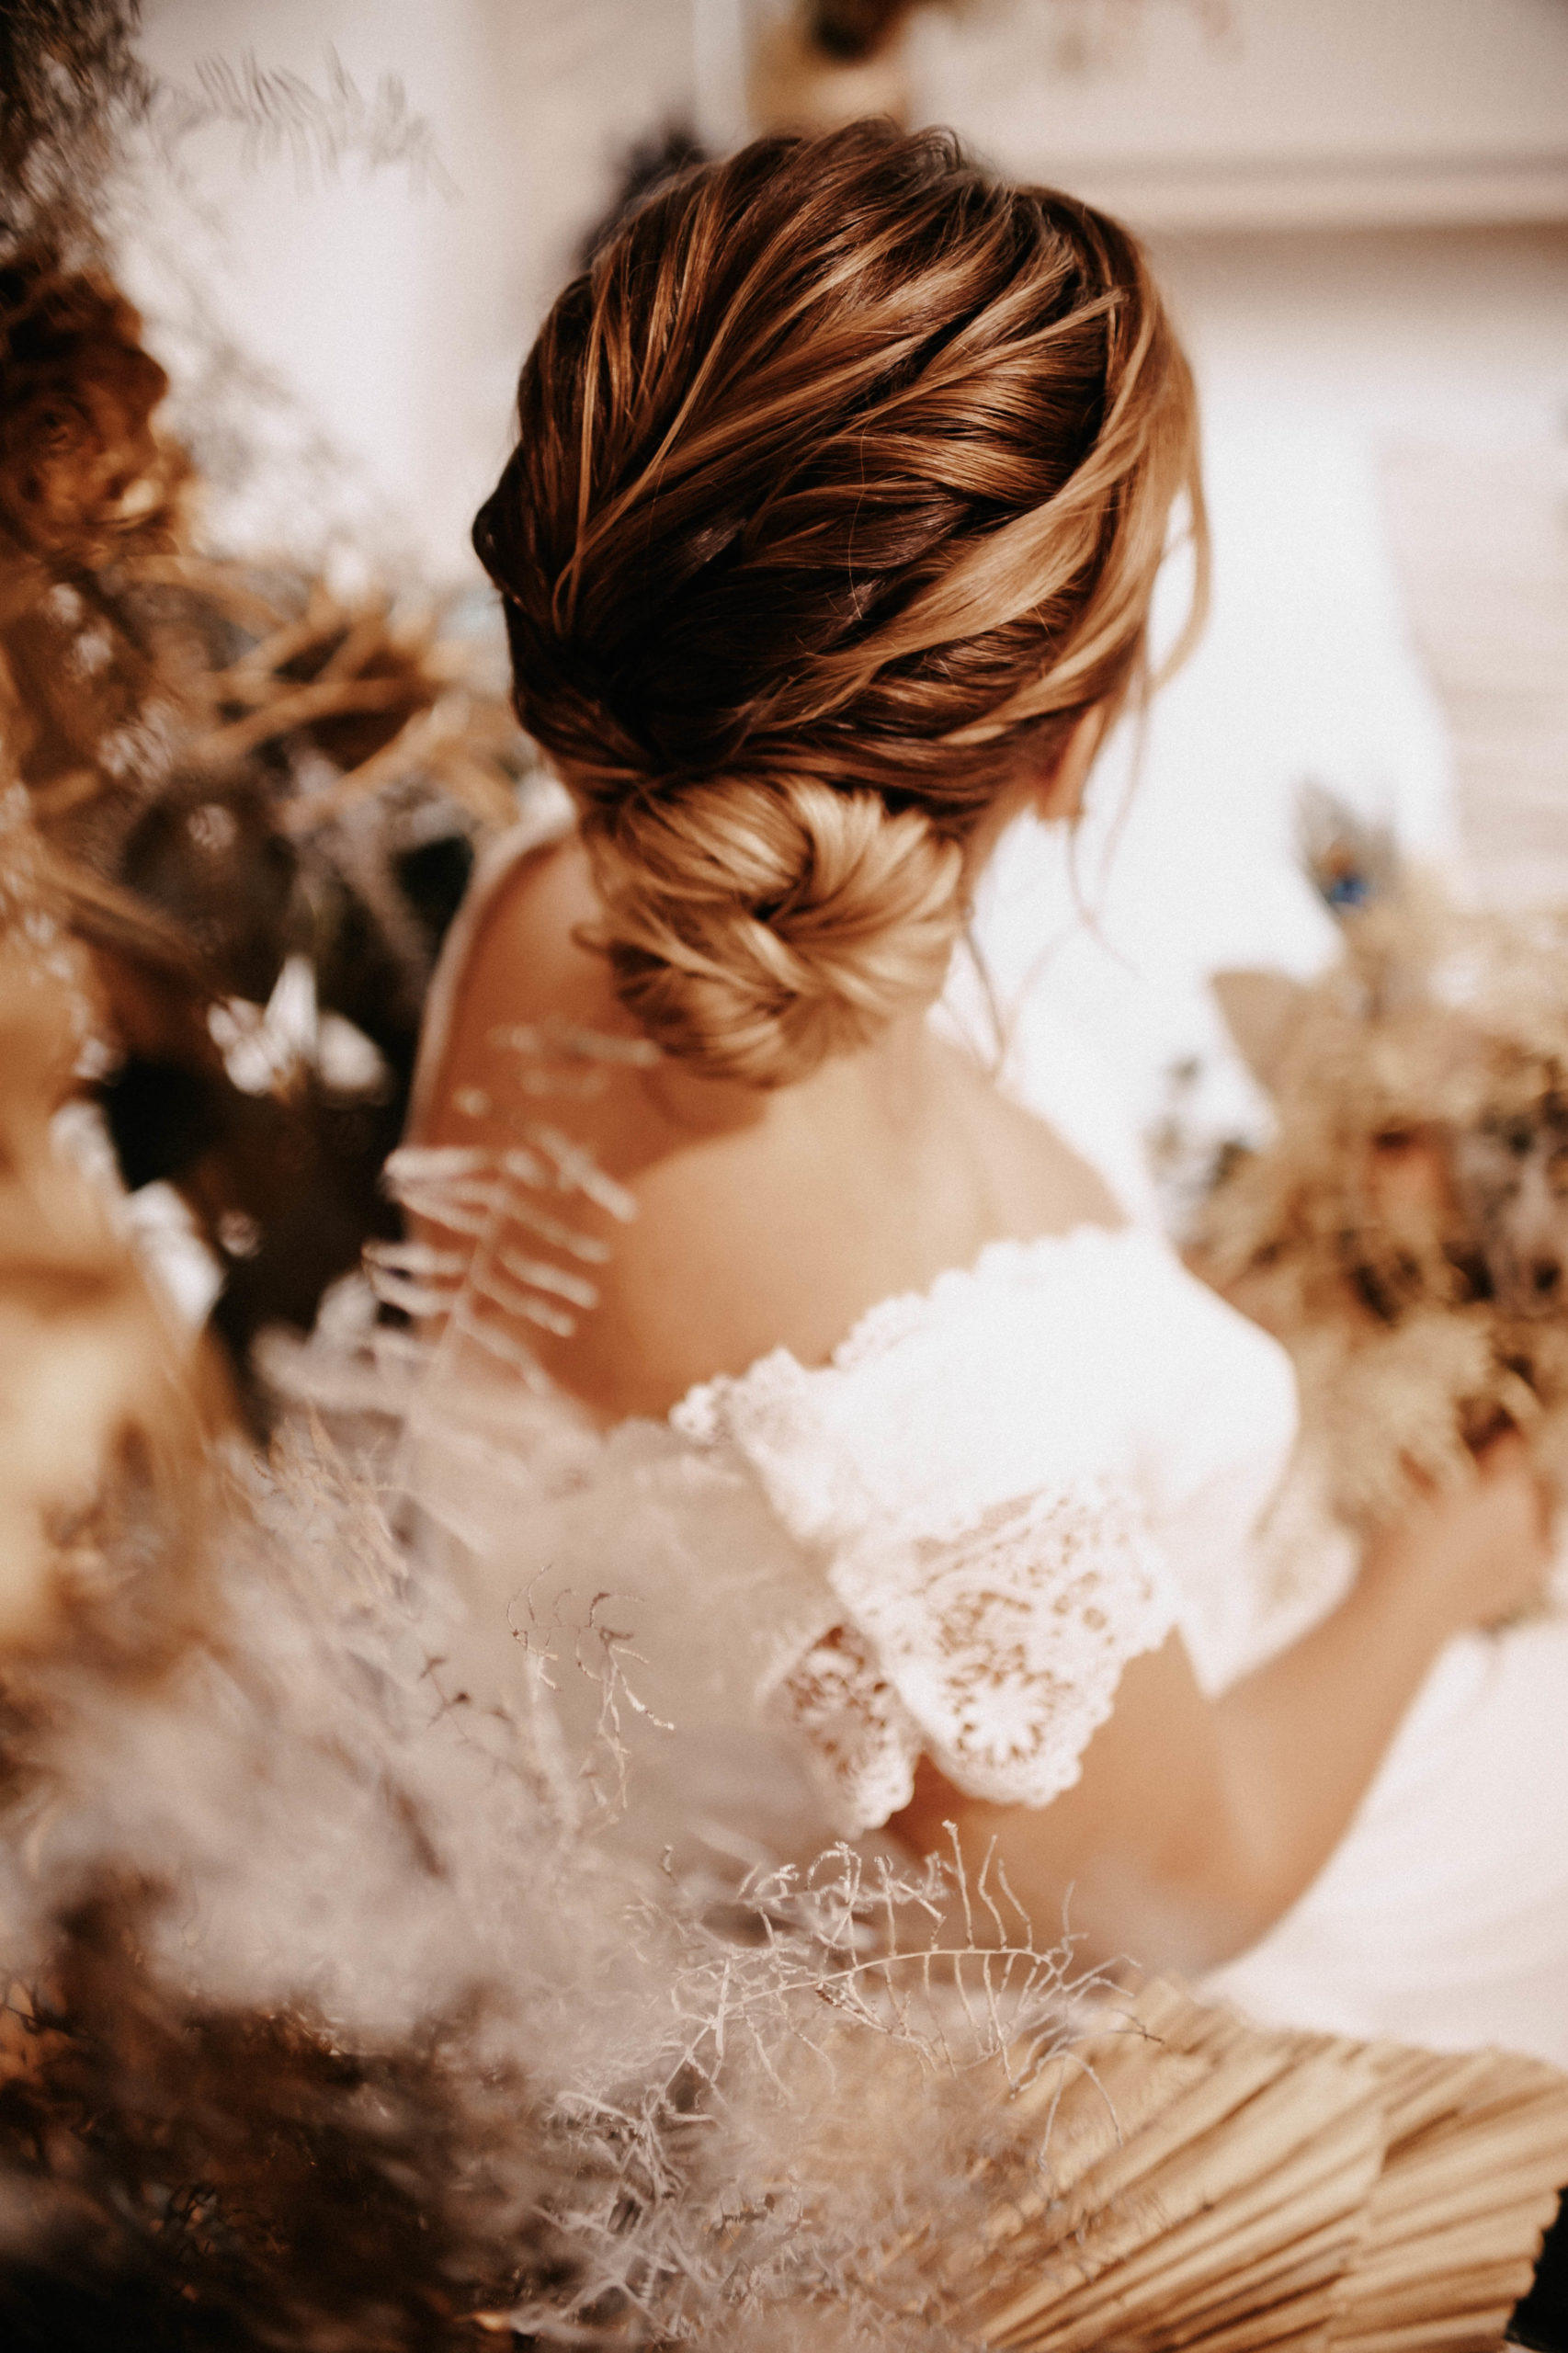 brautatelier ried-styled shooting-muenchen-curvy-hair inspiration-2-min